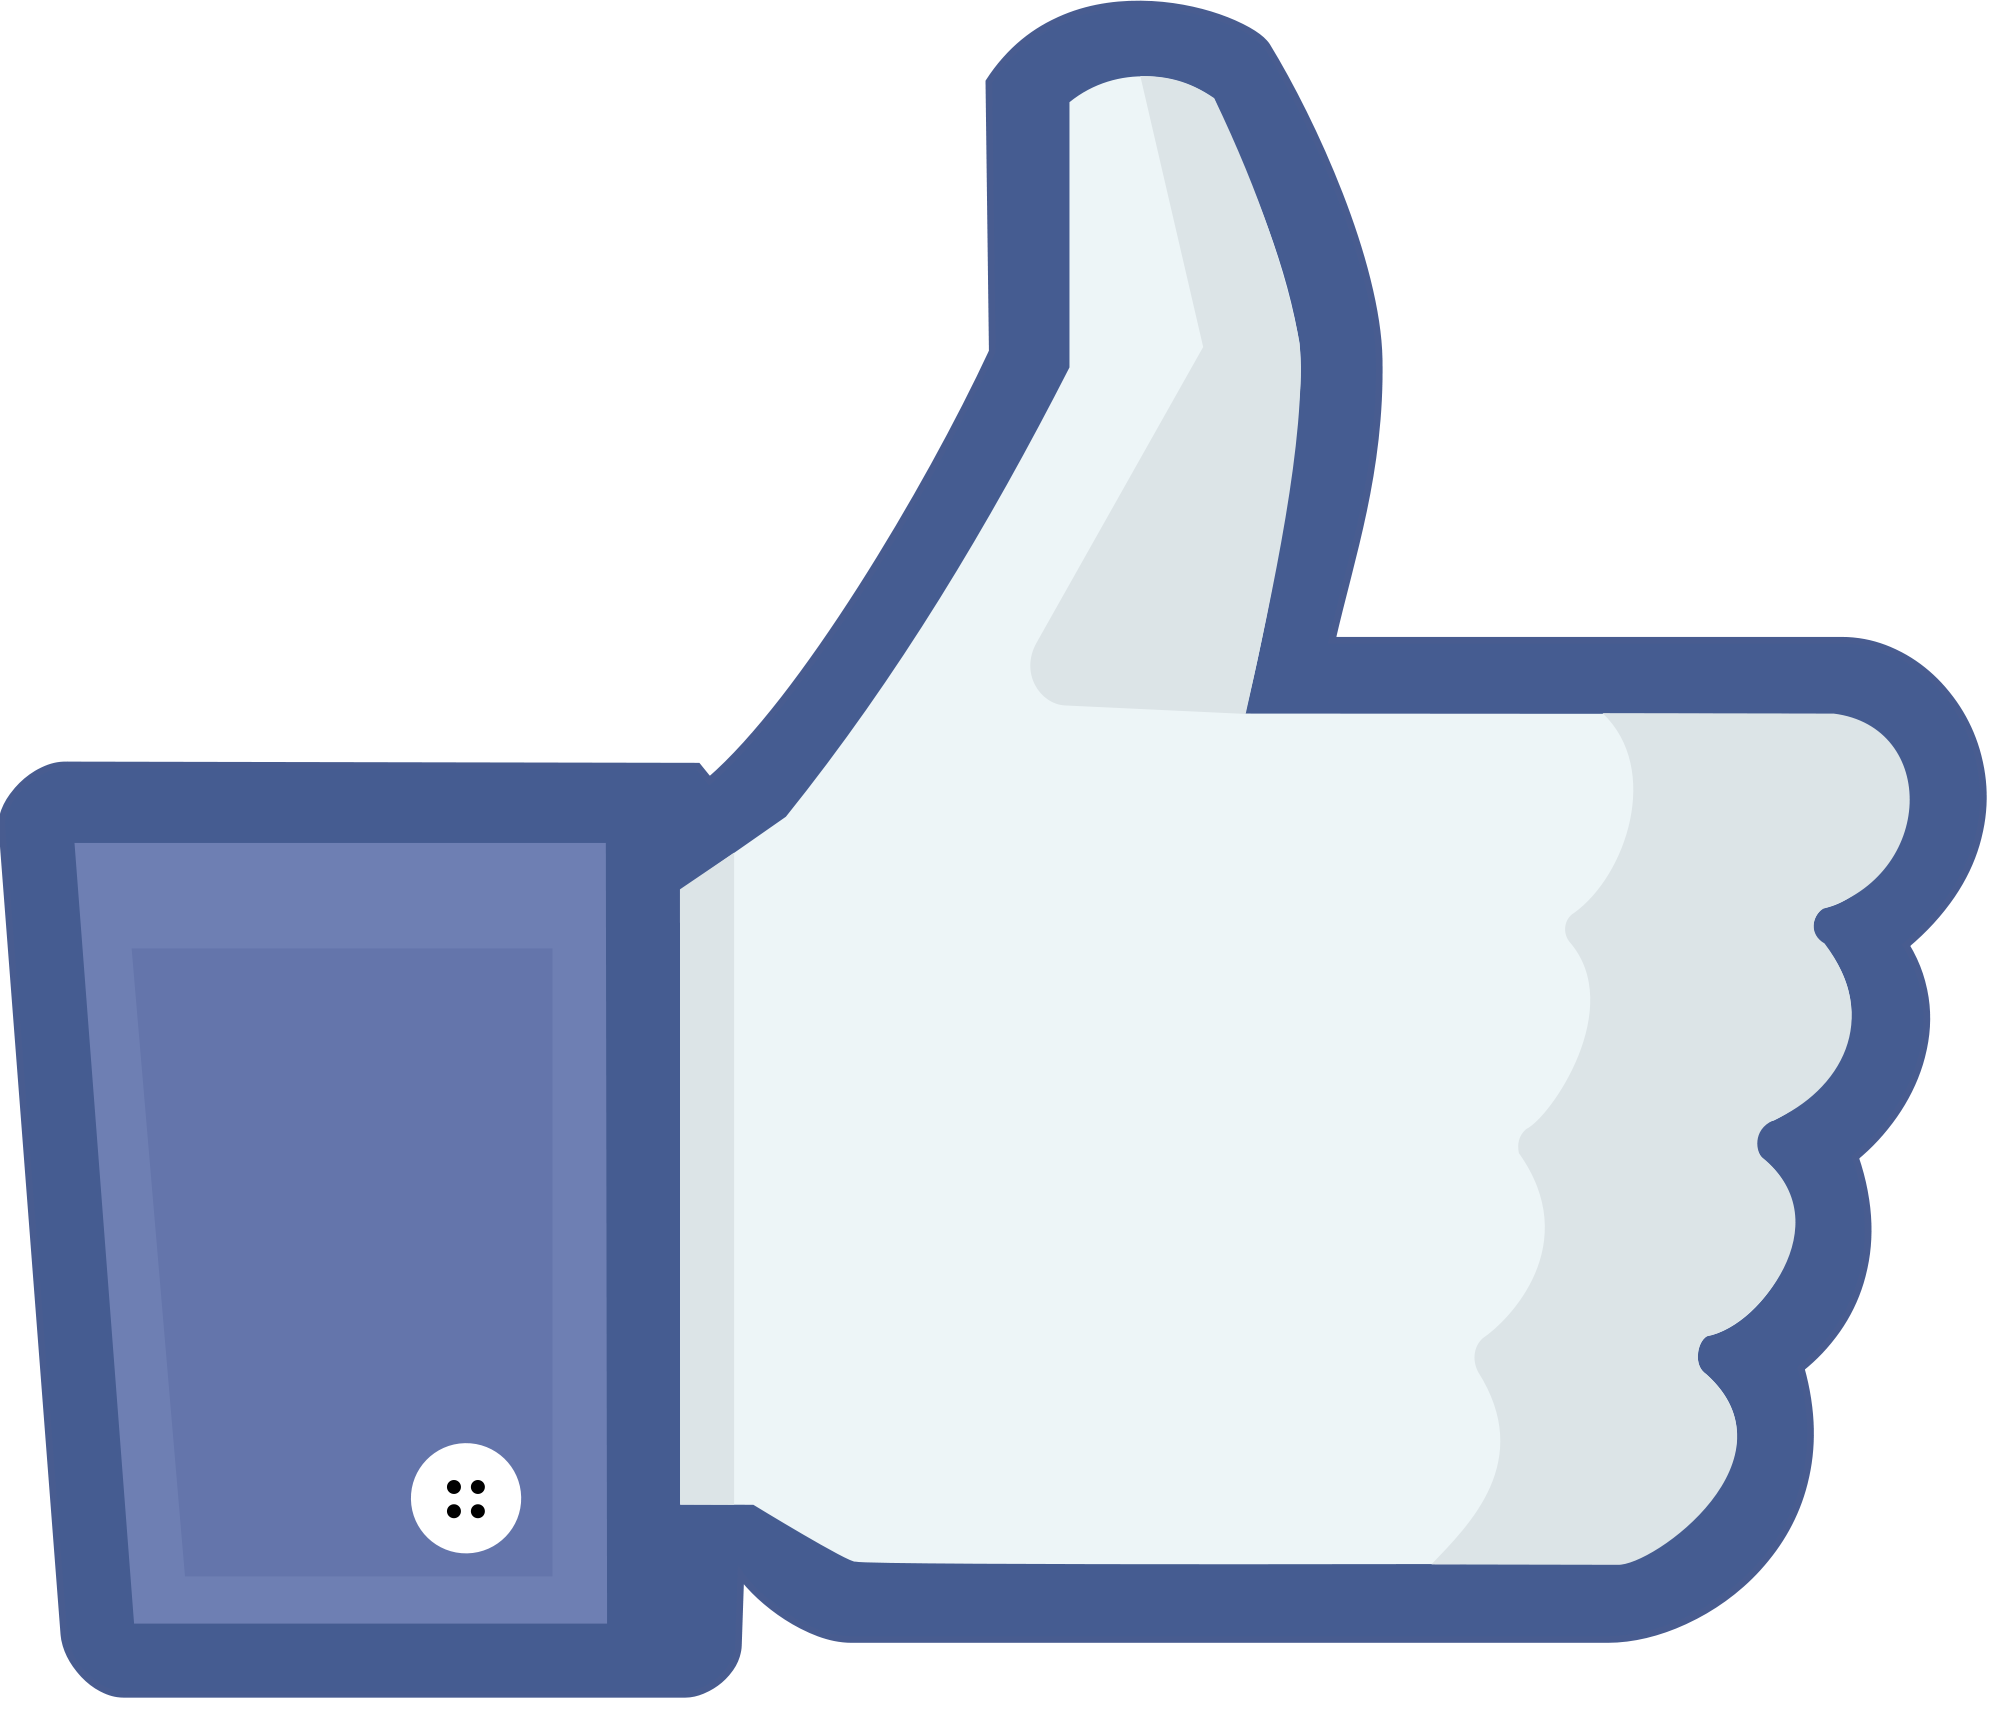 logo facebook like png